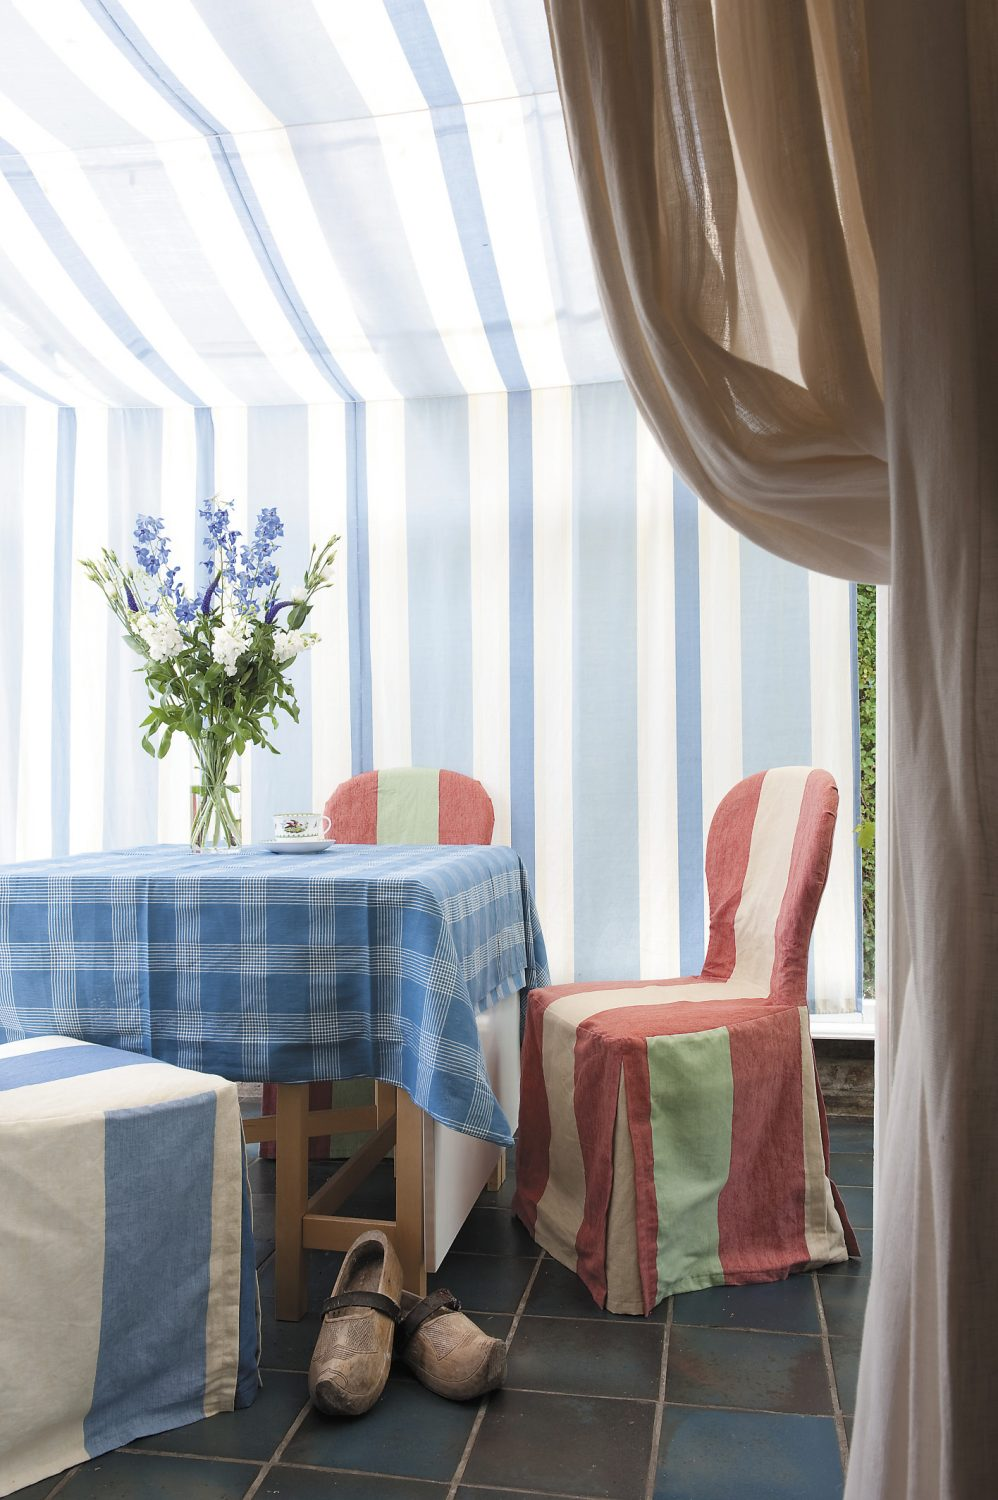 Just off the kitchen one finds a conservatory that has been tented with blue and white striped Jane Churchill fabric